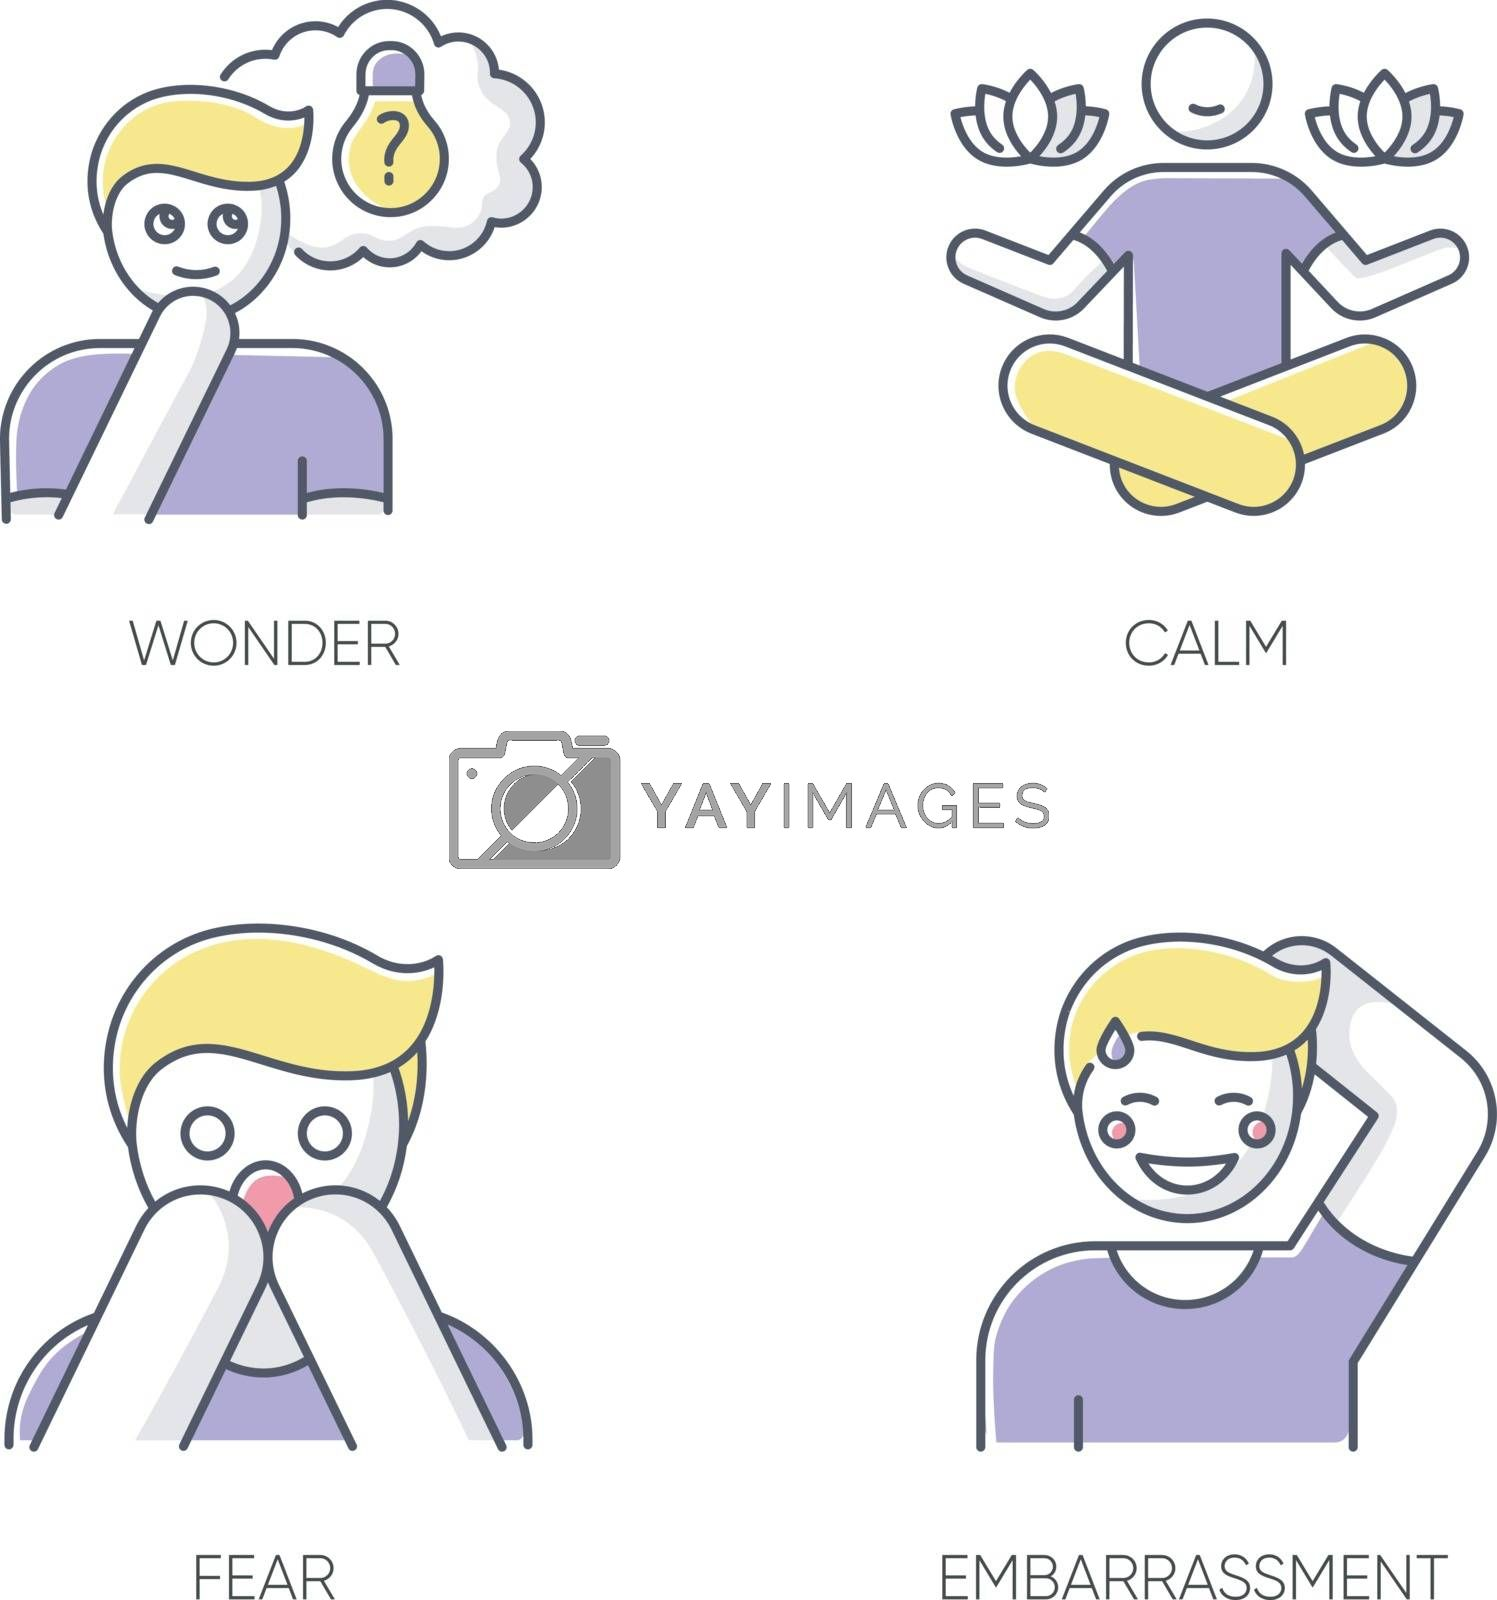 Mental state RGB color icons set. Sense of wonder. Creative thinking. Man feeling calm. Fear from phobia. Person feeling shy. Yoga for mental health. Panic attack. Isolated vector illustrations